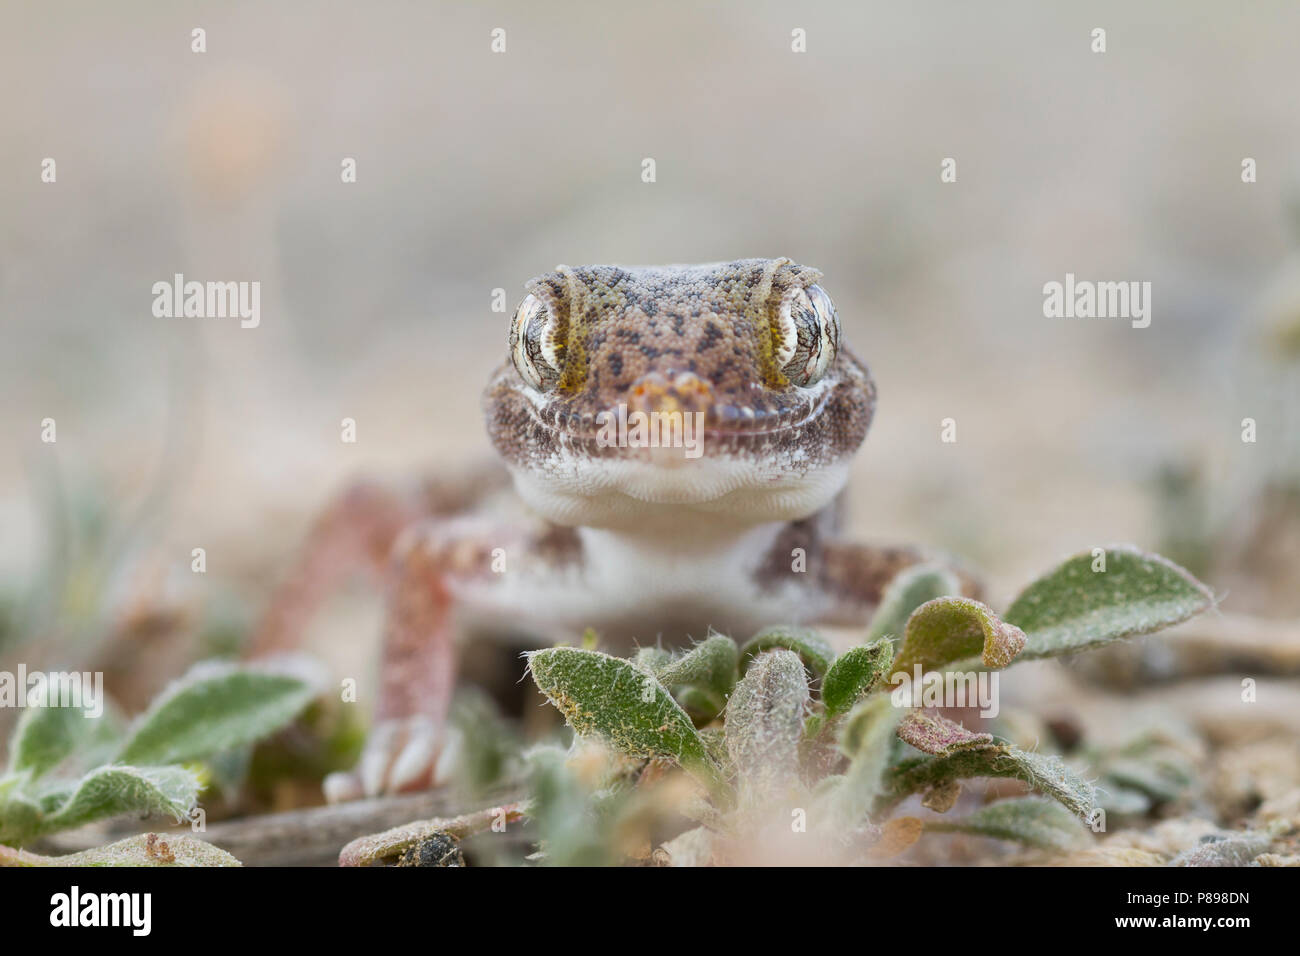 Southern short-fingered Gecko - Stenodactylus leptocosymbotes Stock Photo